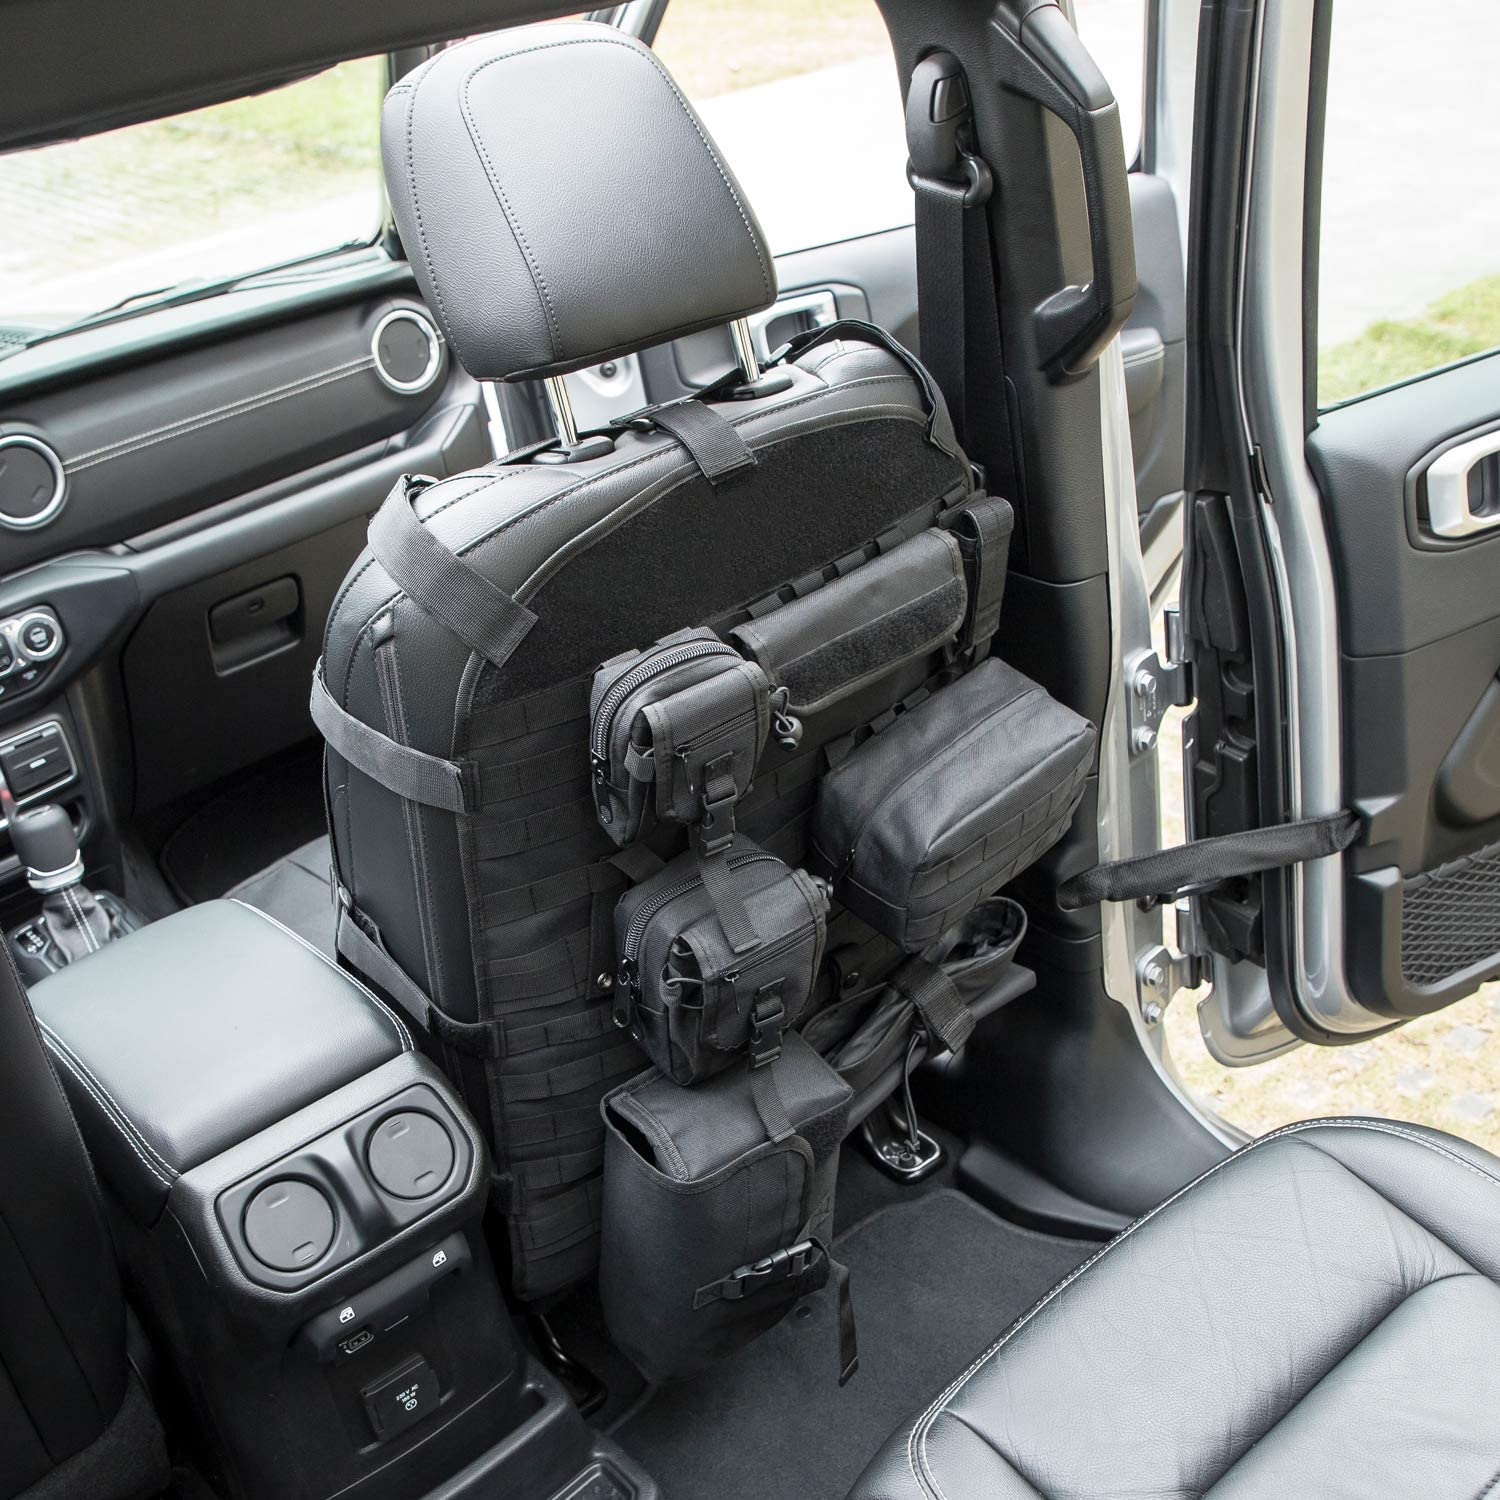 Sunluway Universal Front Seat Cover Case with Storage Bags for 1956-2019 Jeep Wrangler CJ YJ LJ JK JL Ford Toyota Jeep Cherokee etc.